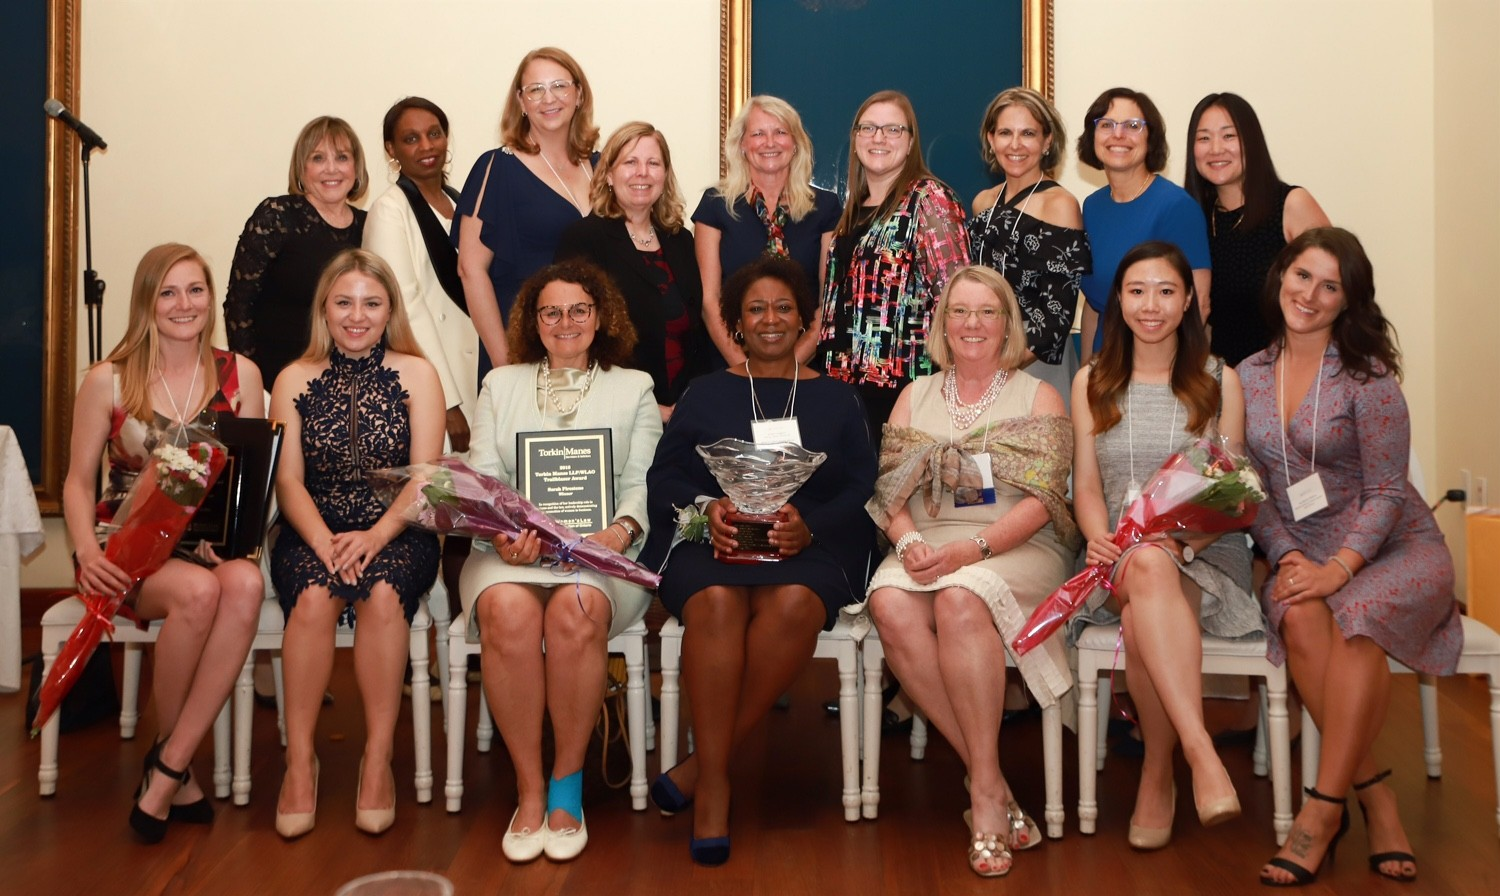 Annual Award Winners, Sponsors and WLAO Board 2018 AAG